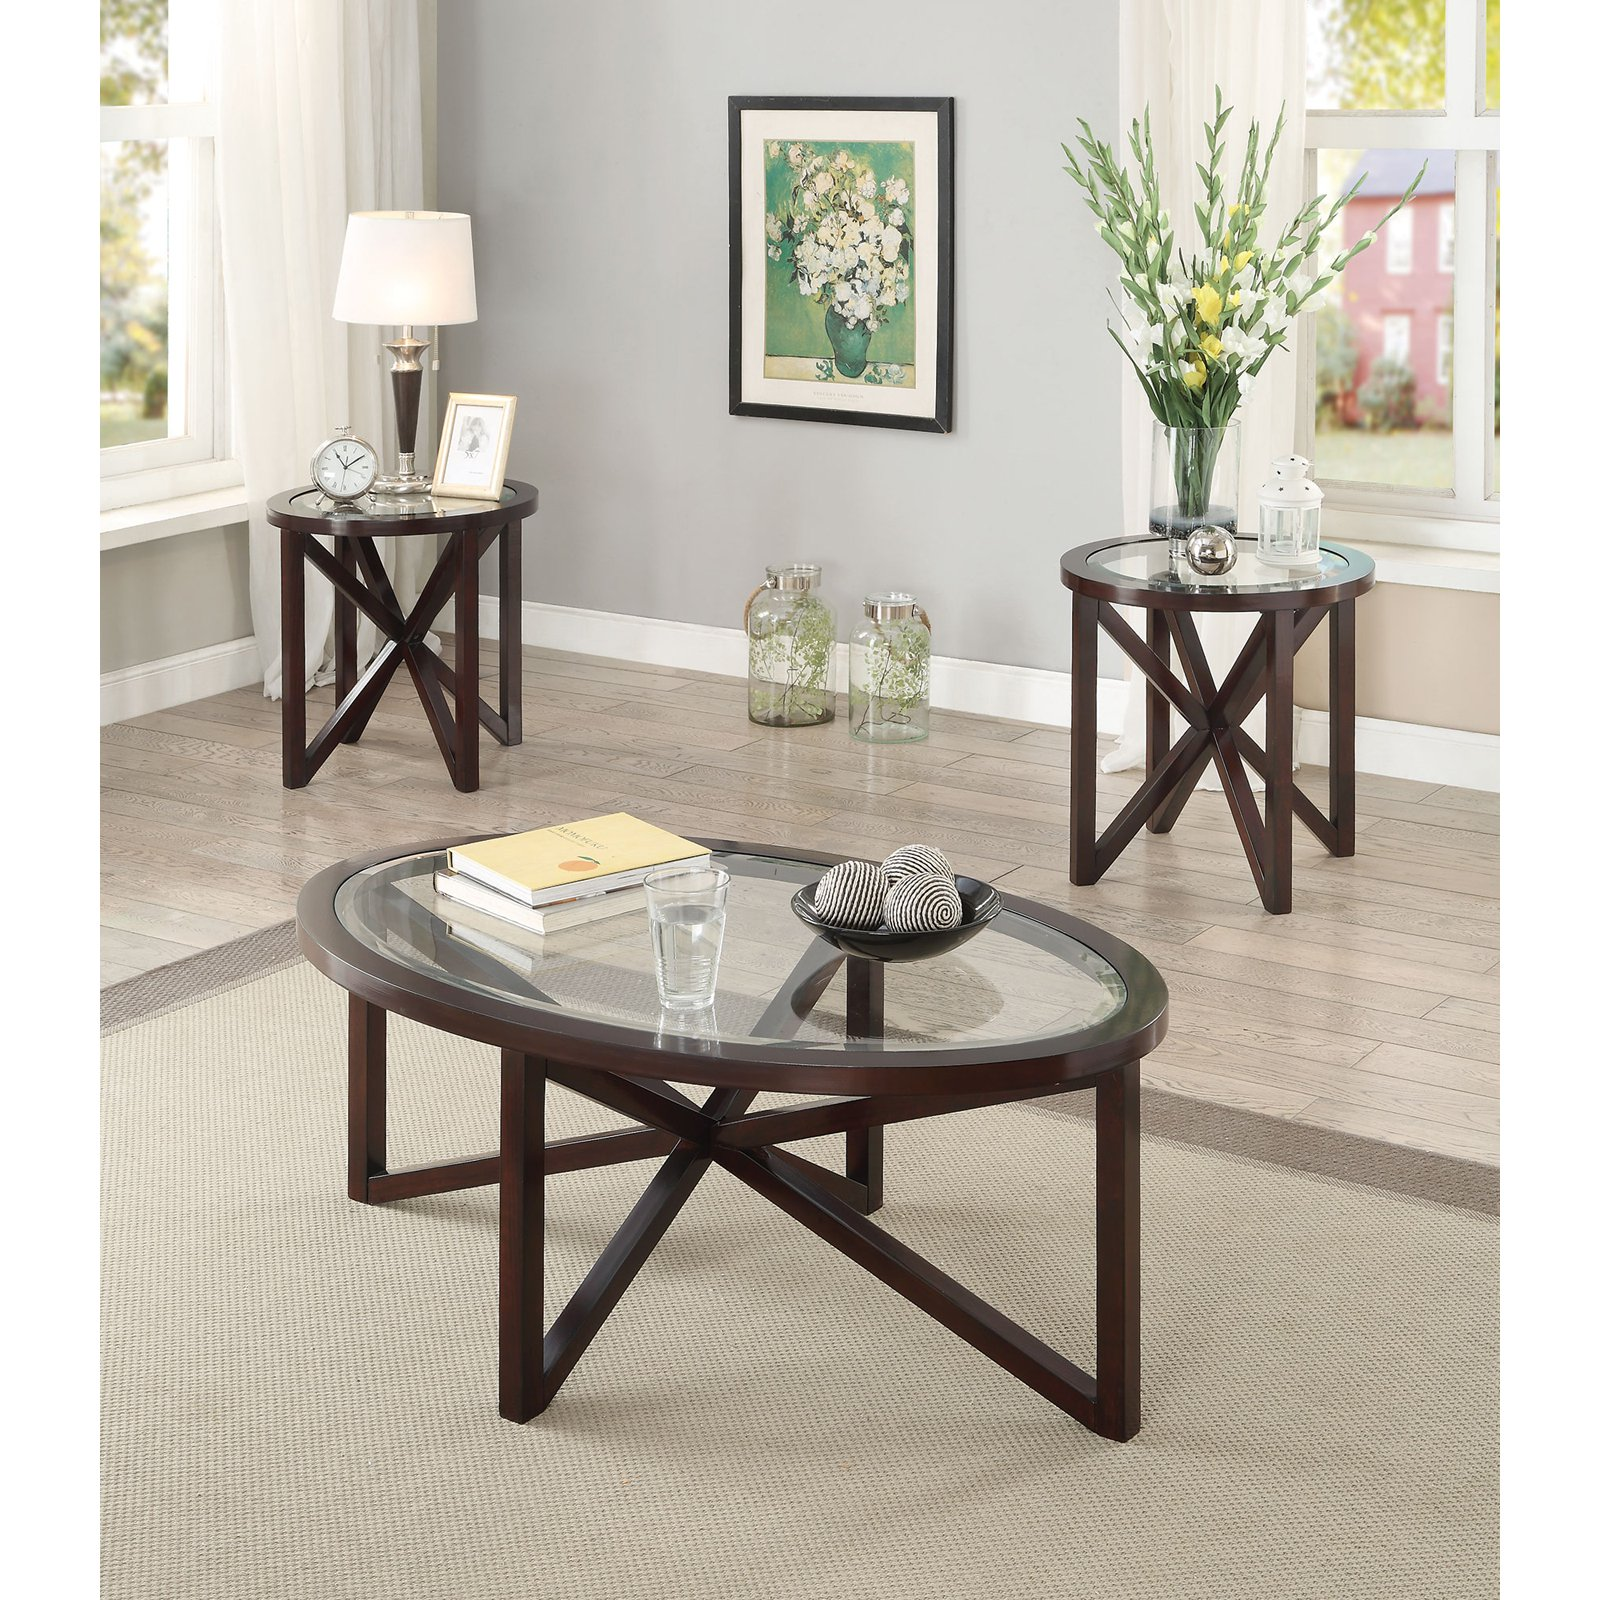 Coaster Furniture 3 Piece Glass Top Coffee Table Set - Brown